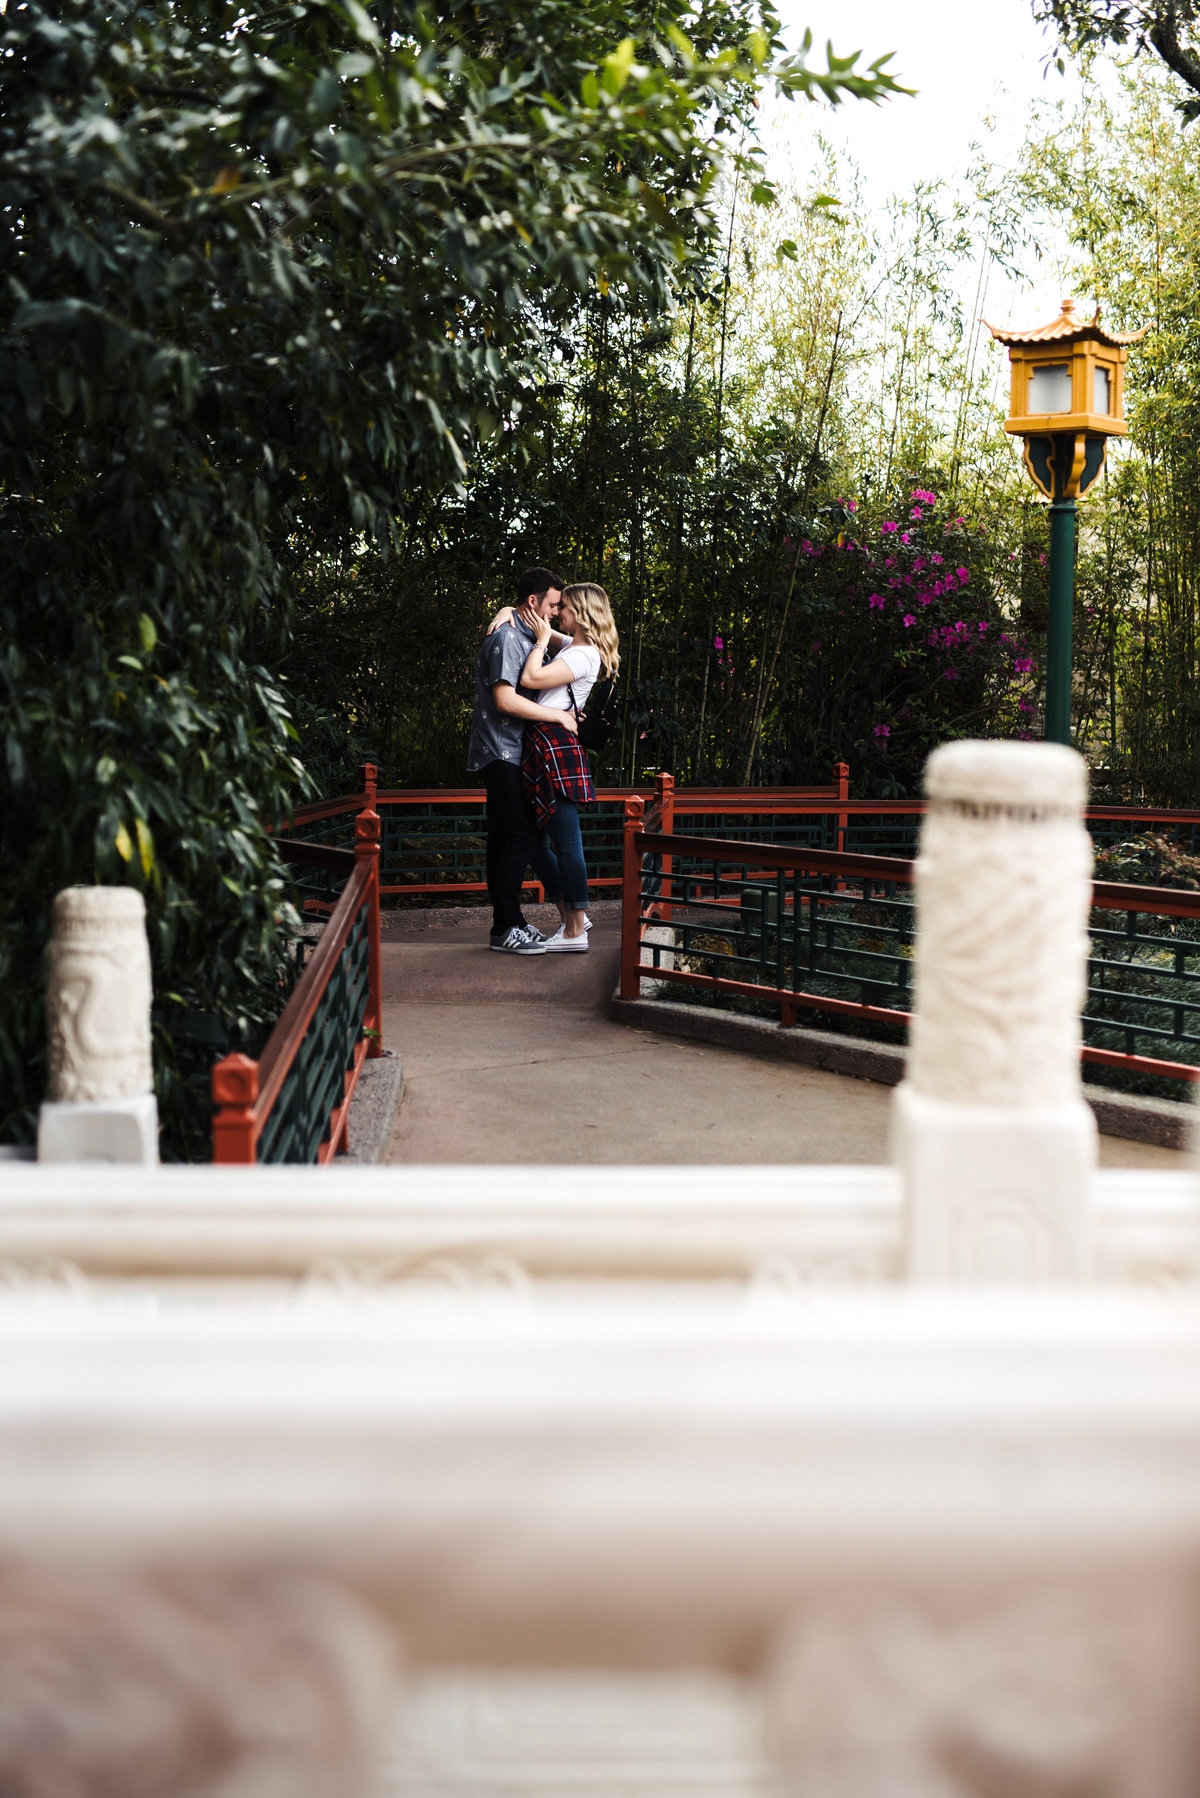 Ally & Brett's Disney Engagement Session (142 of 243)